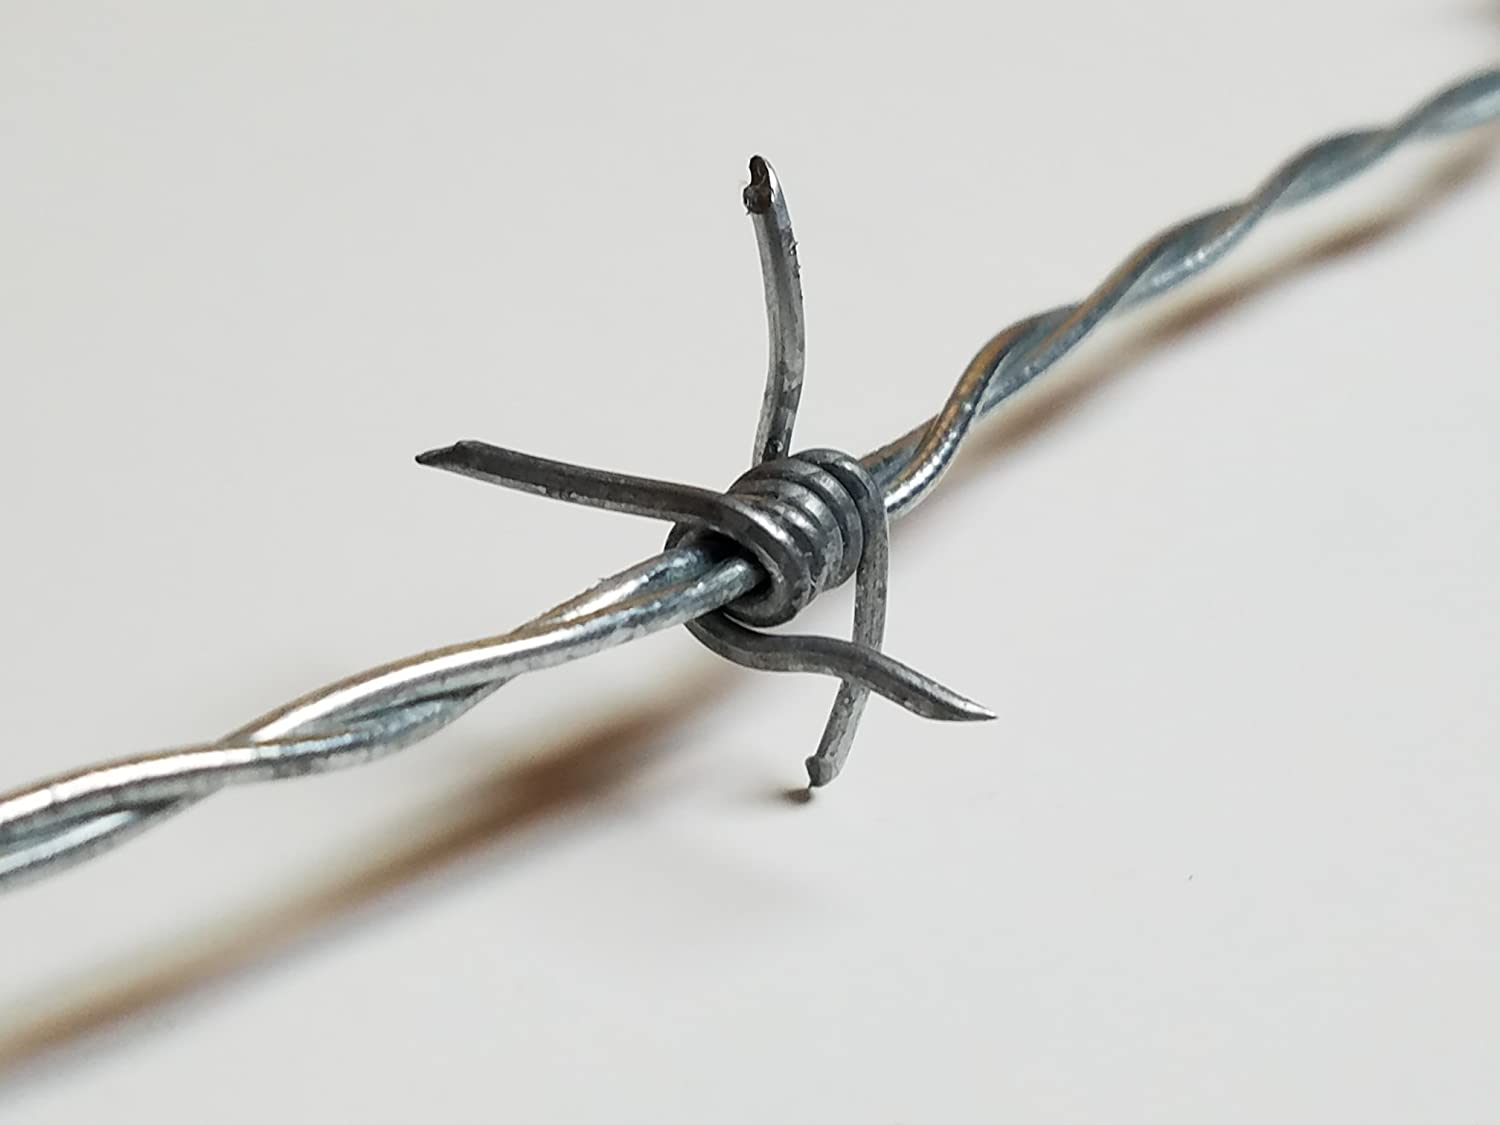 Amazon.com: Real Barbed Wire 25ft 18 gauge: Arts, Crafts & Sewing